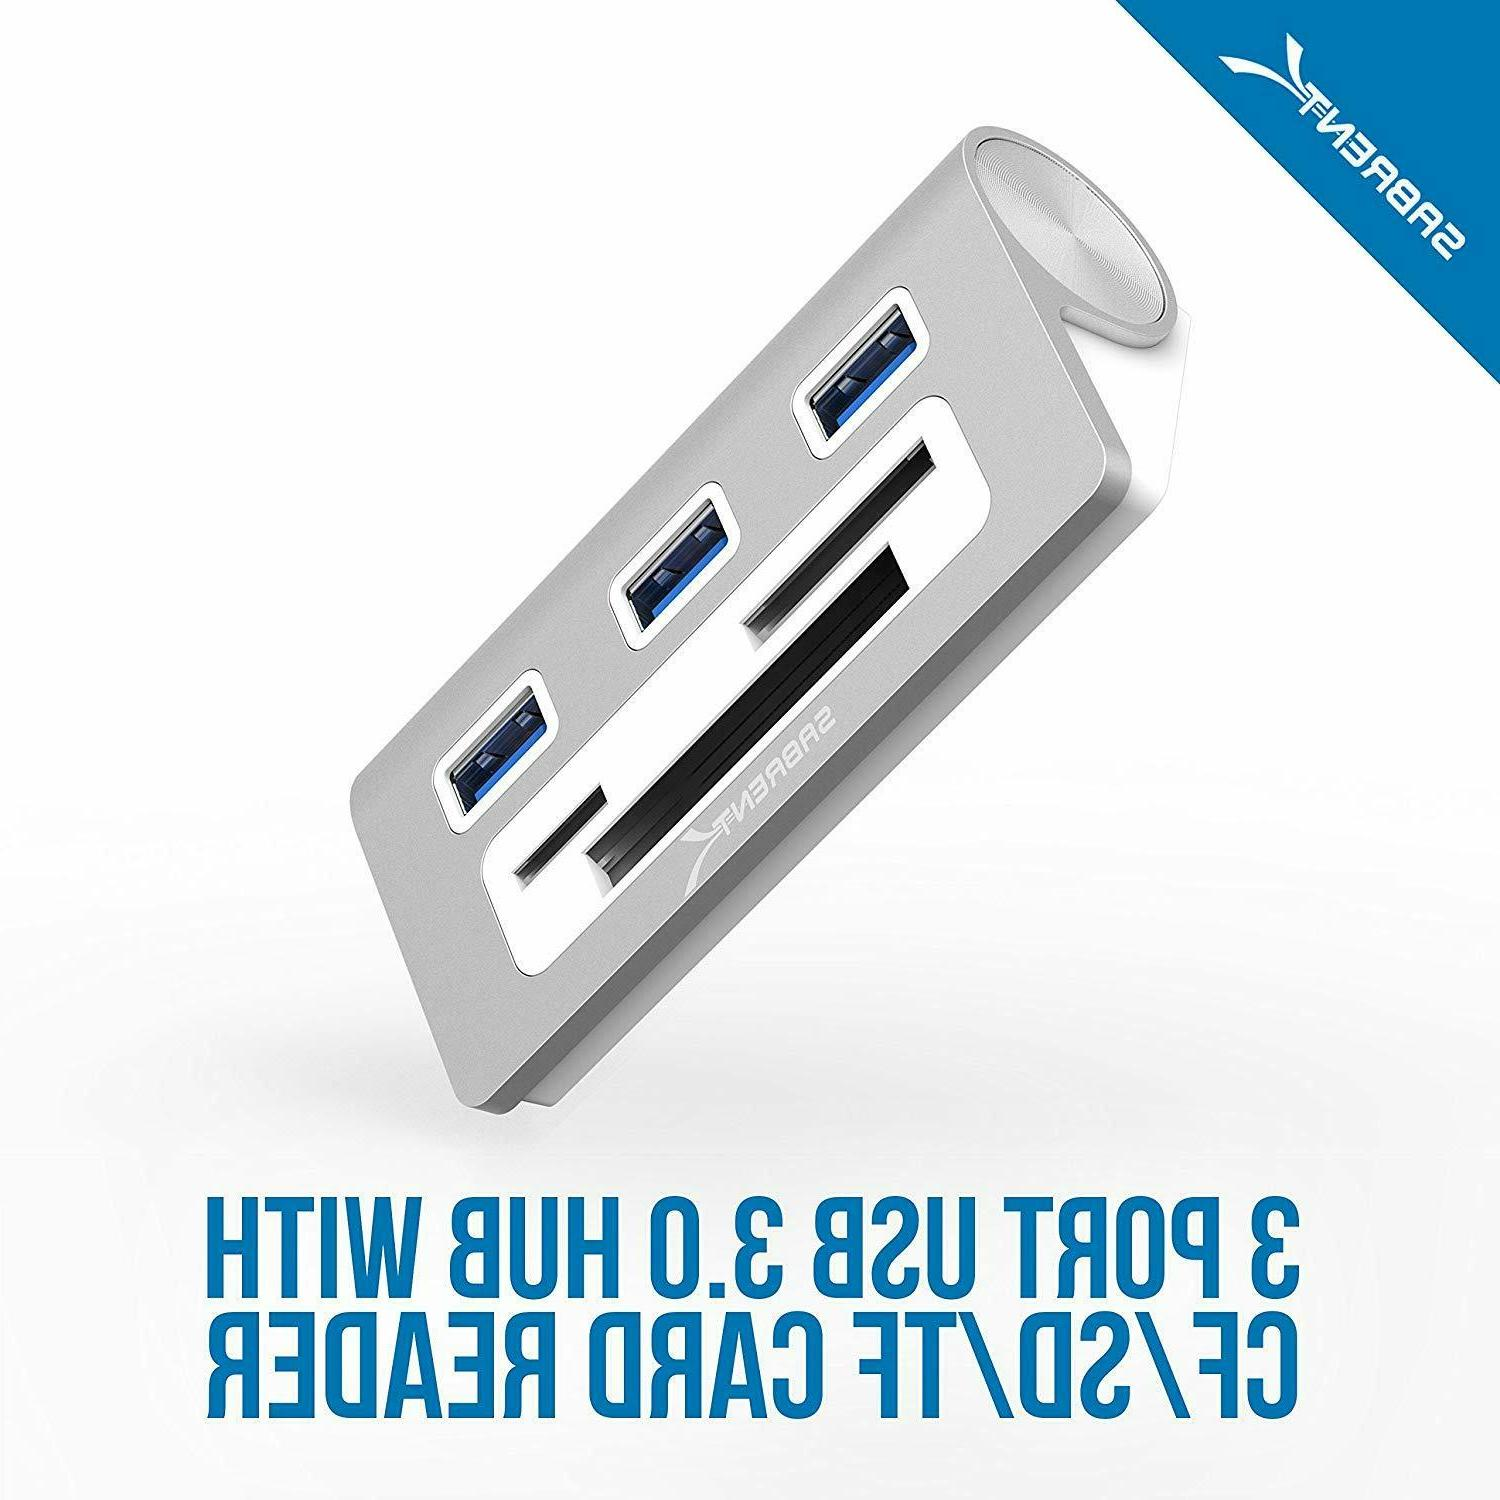 Sabrent Premium 3 Aluminum with Card Reader-12 Cable